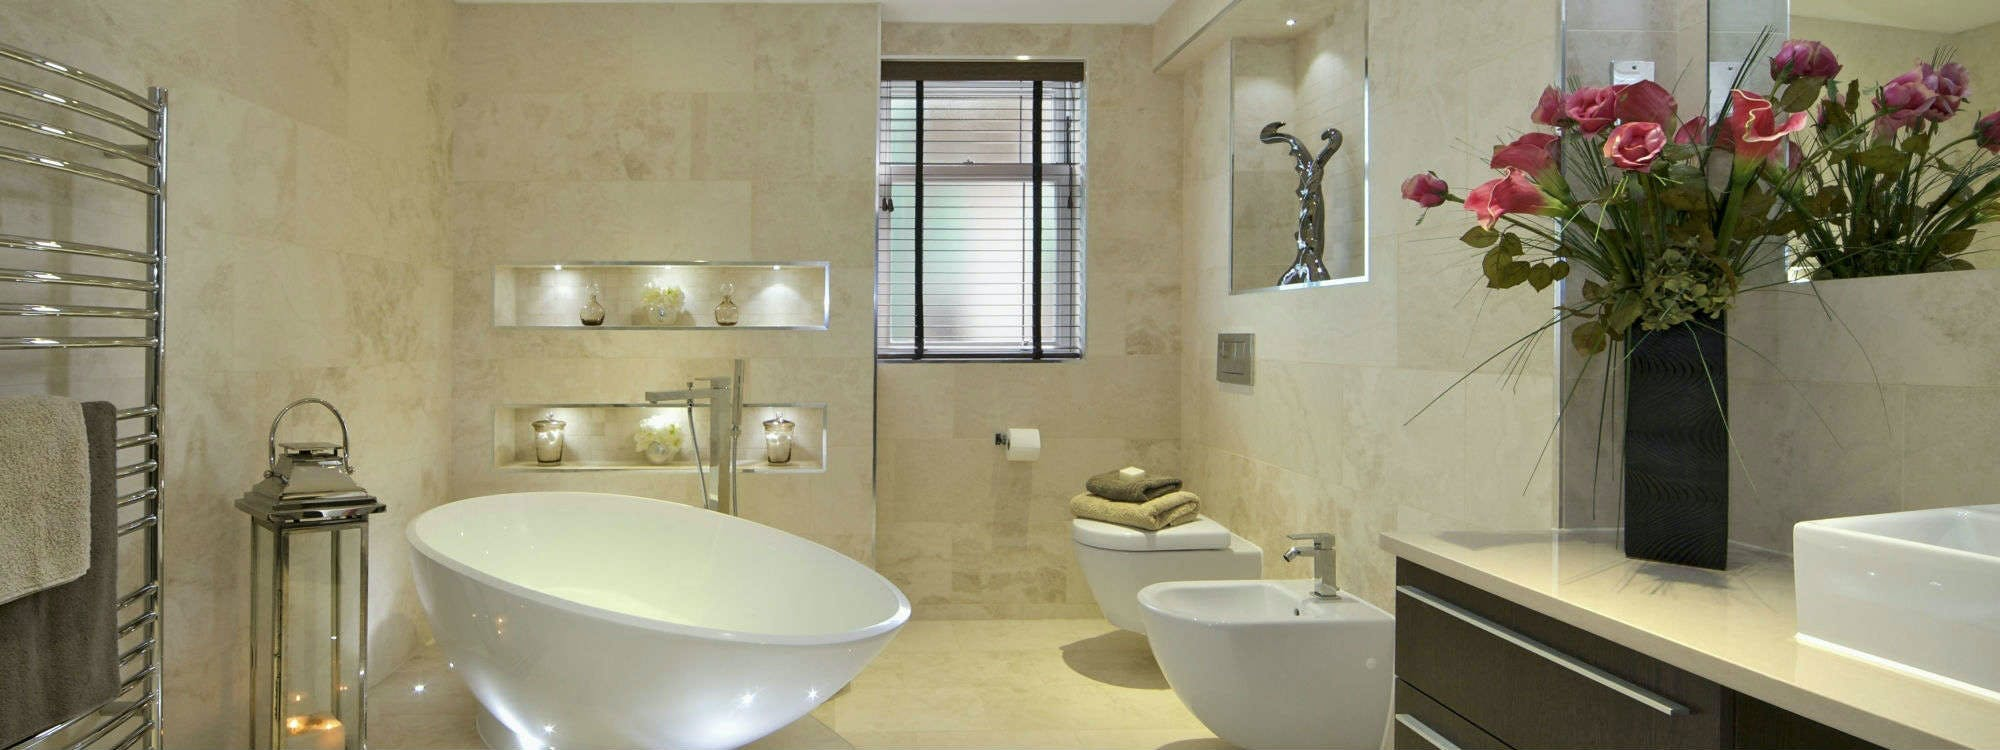 For your very own, simply stunning, luxury bathroom suite that provides you with a beautiful space in which to relax and unwind at the end of your busy day choose More Bathrooms.